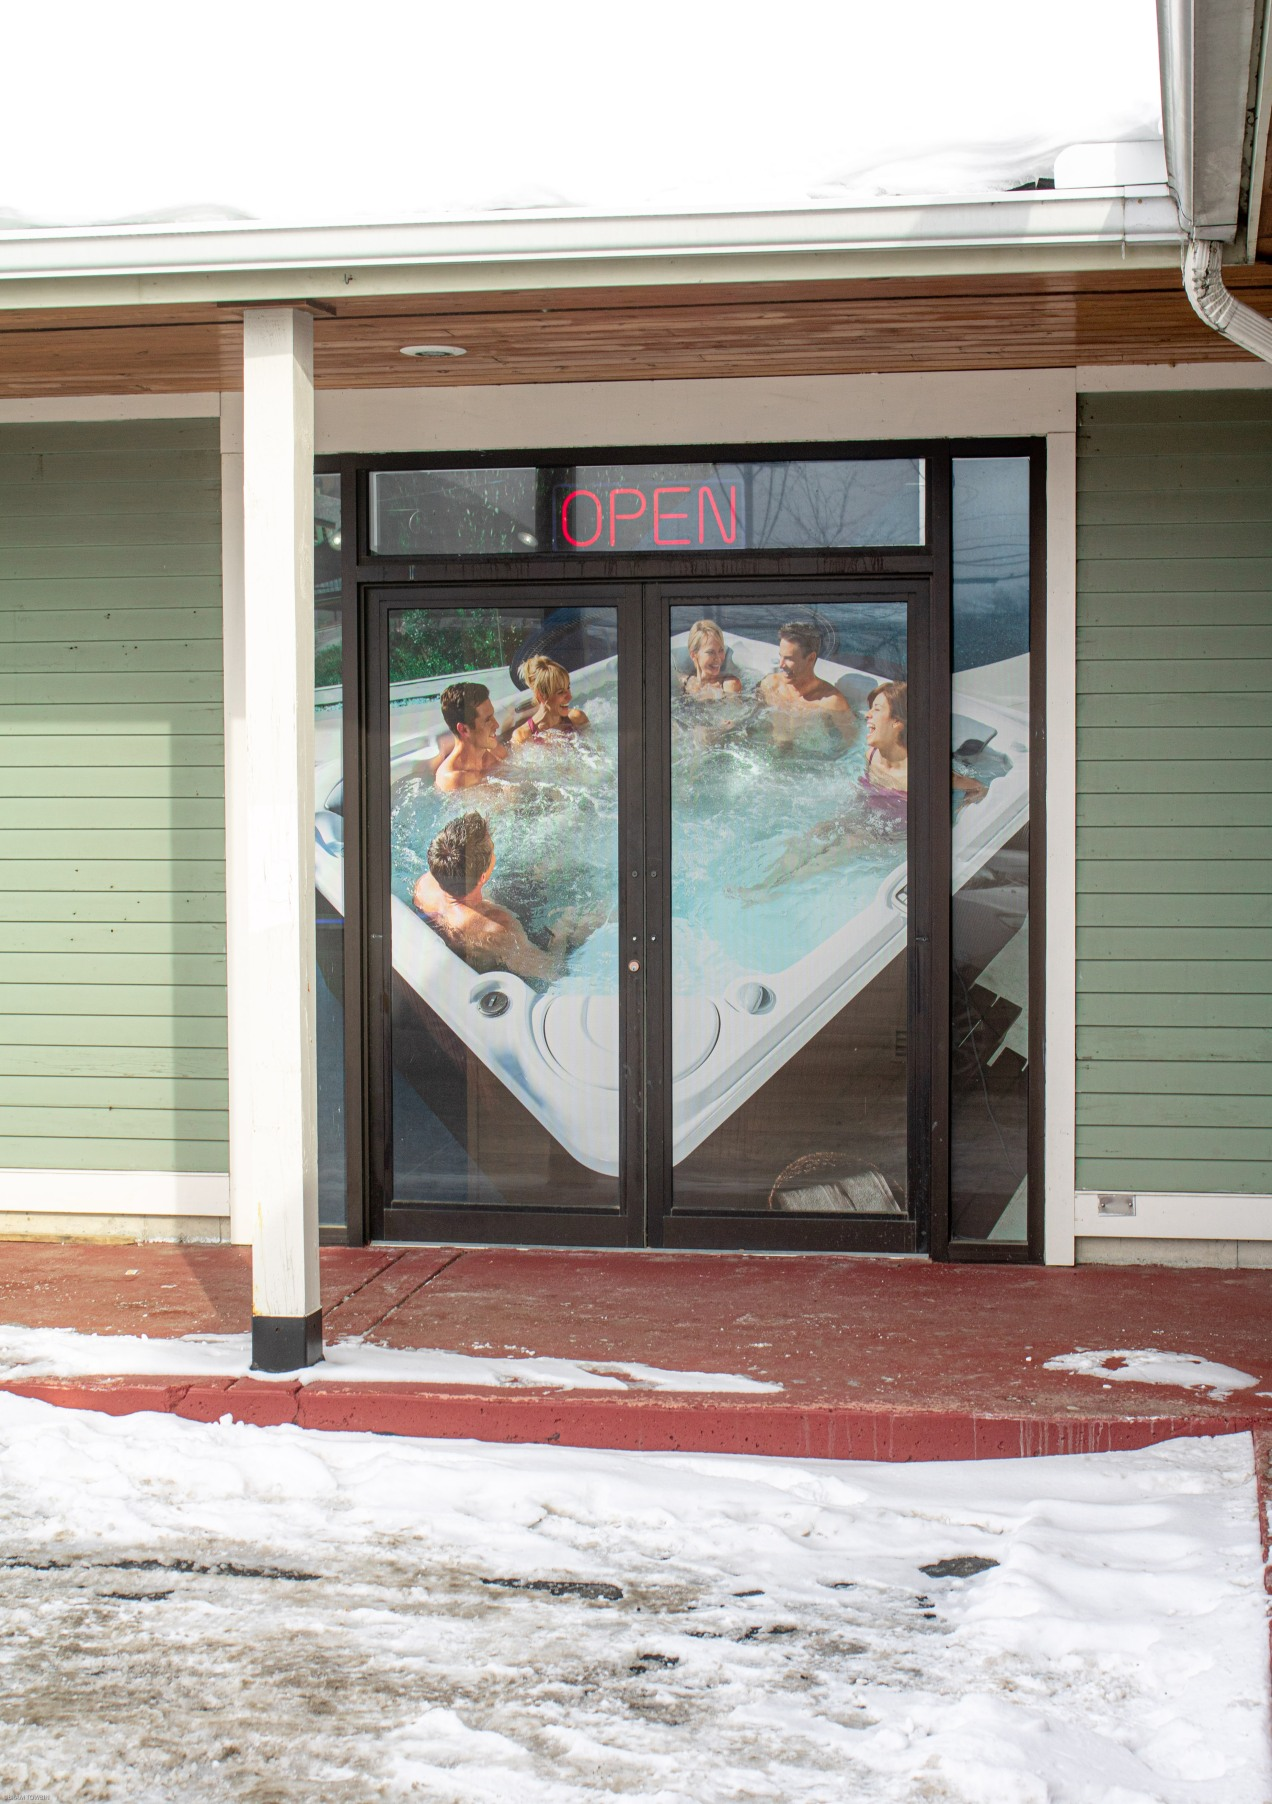 pool in winter pic spa